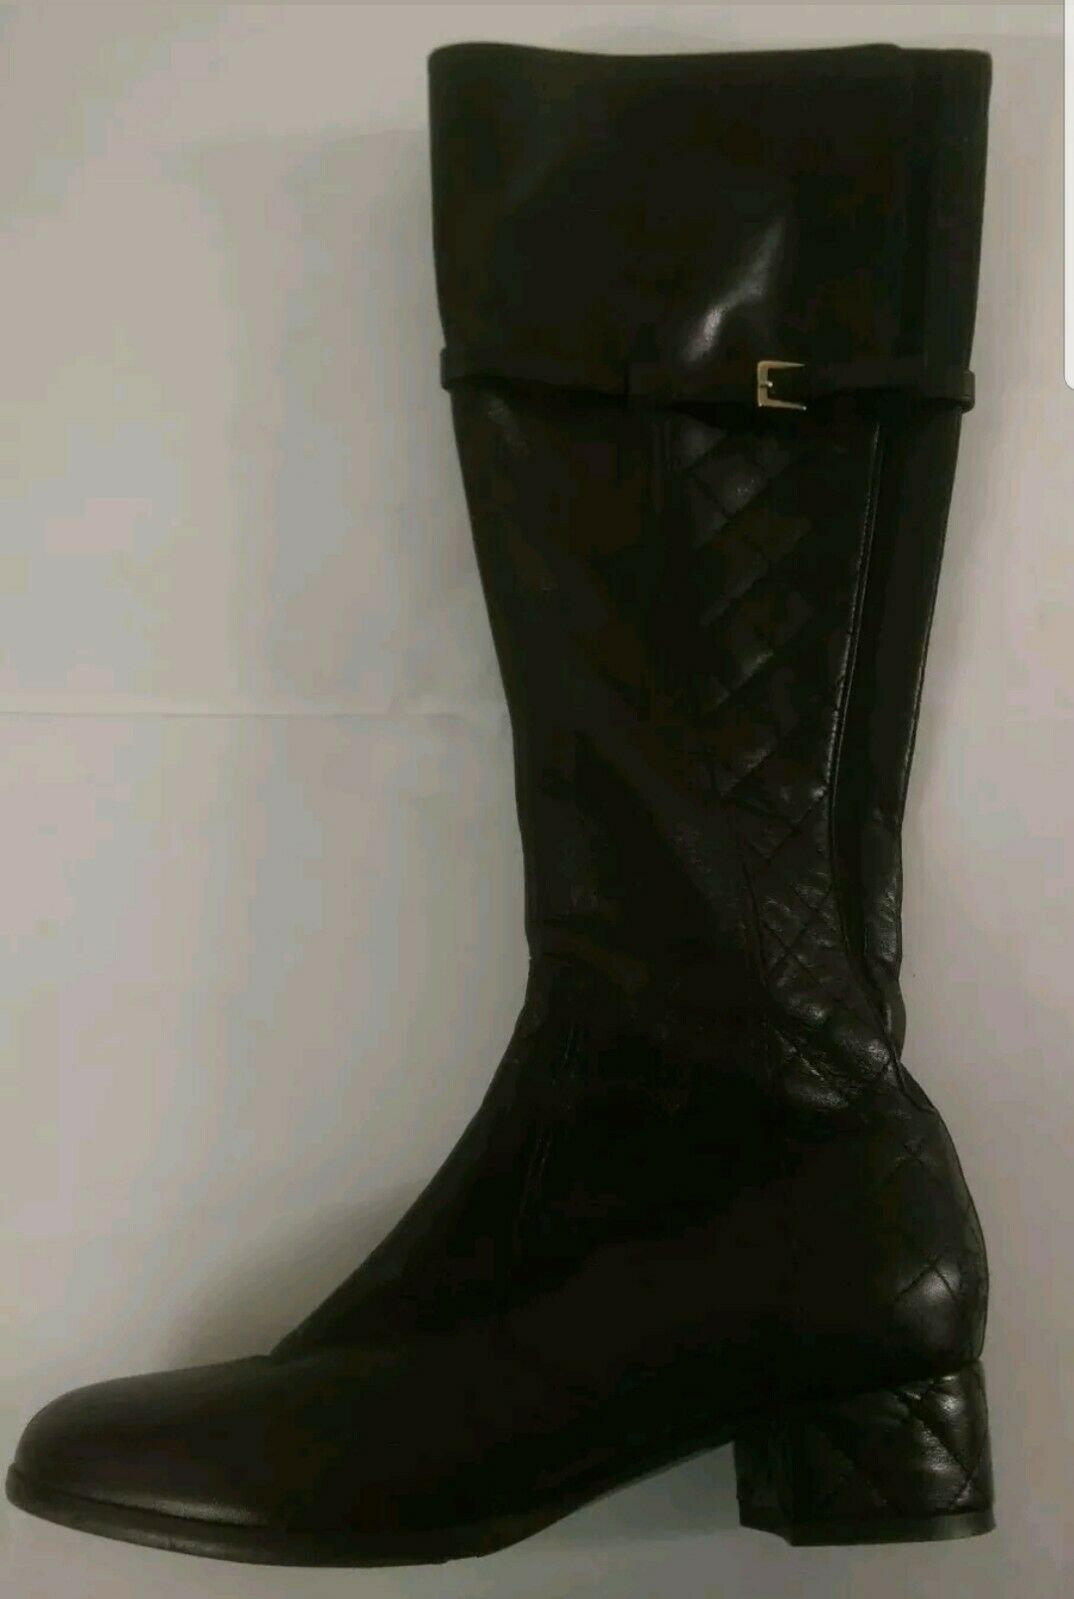 L.K Bennett women Napa Leather Knee High Quilted Boots Black Women's Size EU 36